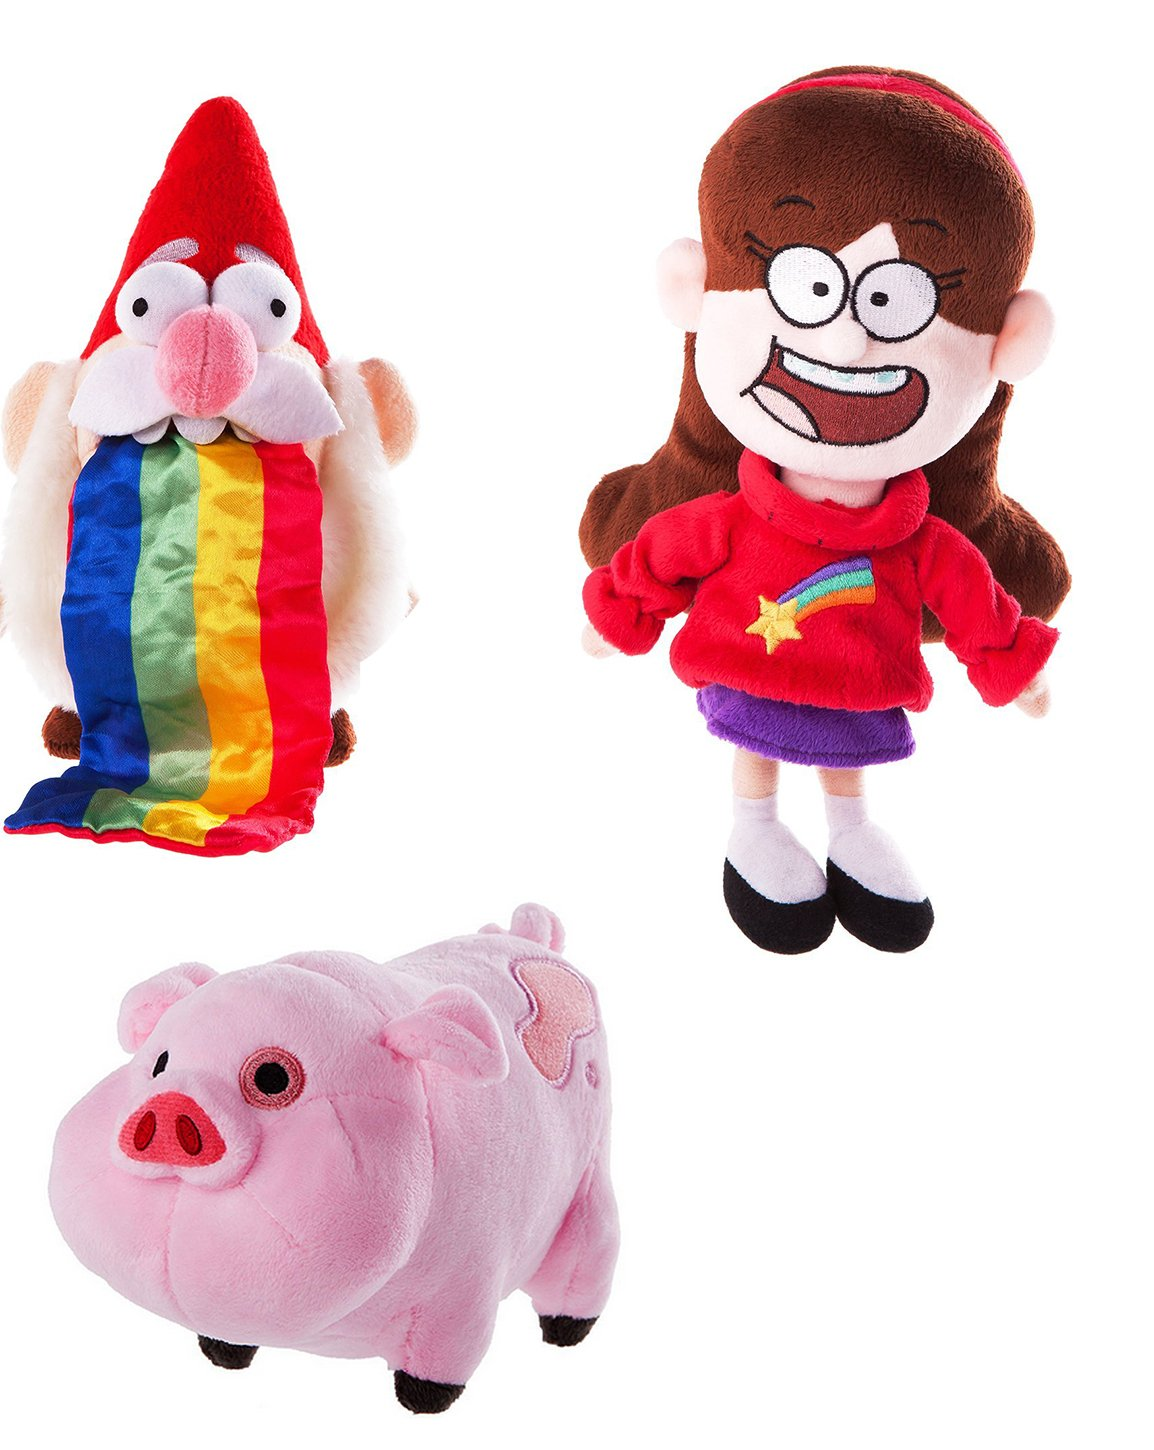 Amazon.com: Disney Gravity Falls Plush Bundle 3 item: Mabel , Waddles and Barfing Gnome: Toys & Games